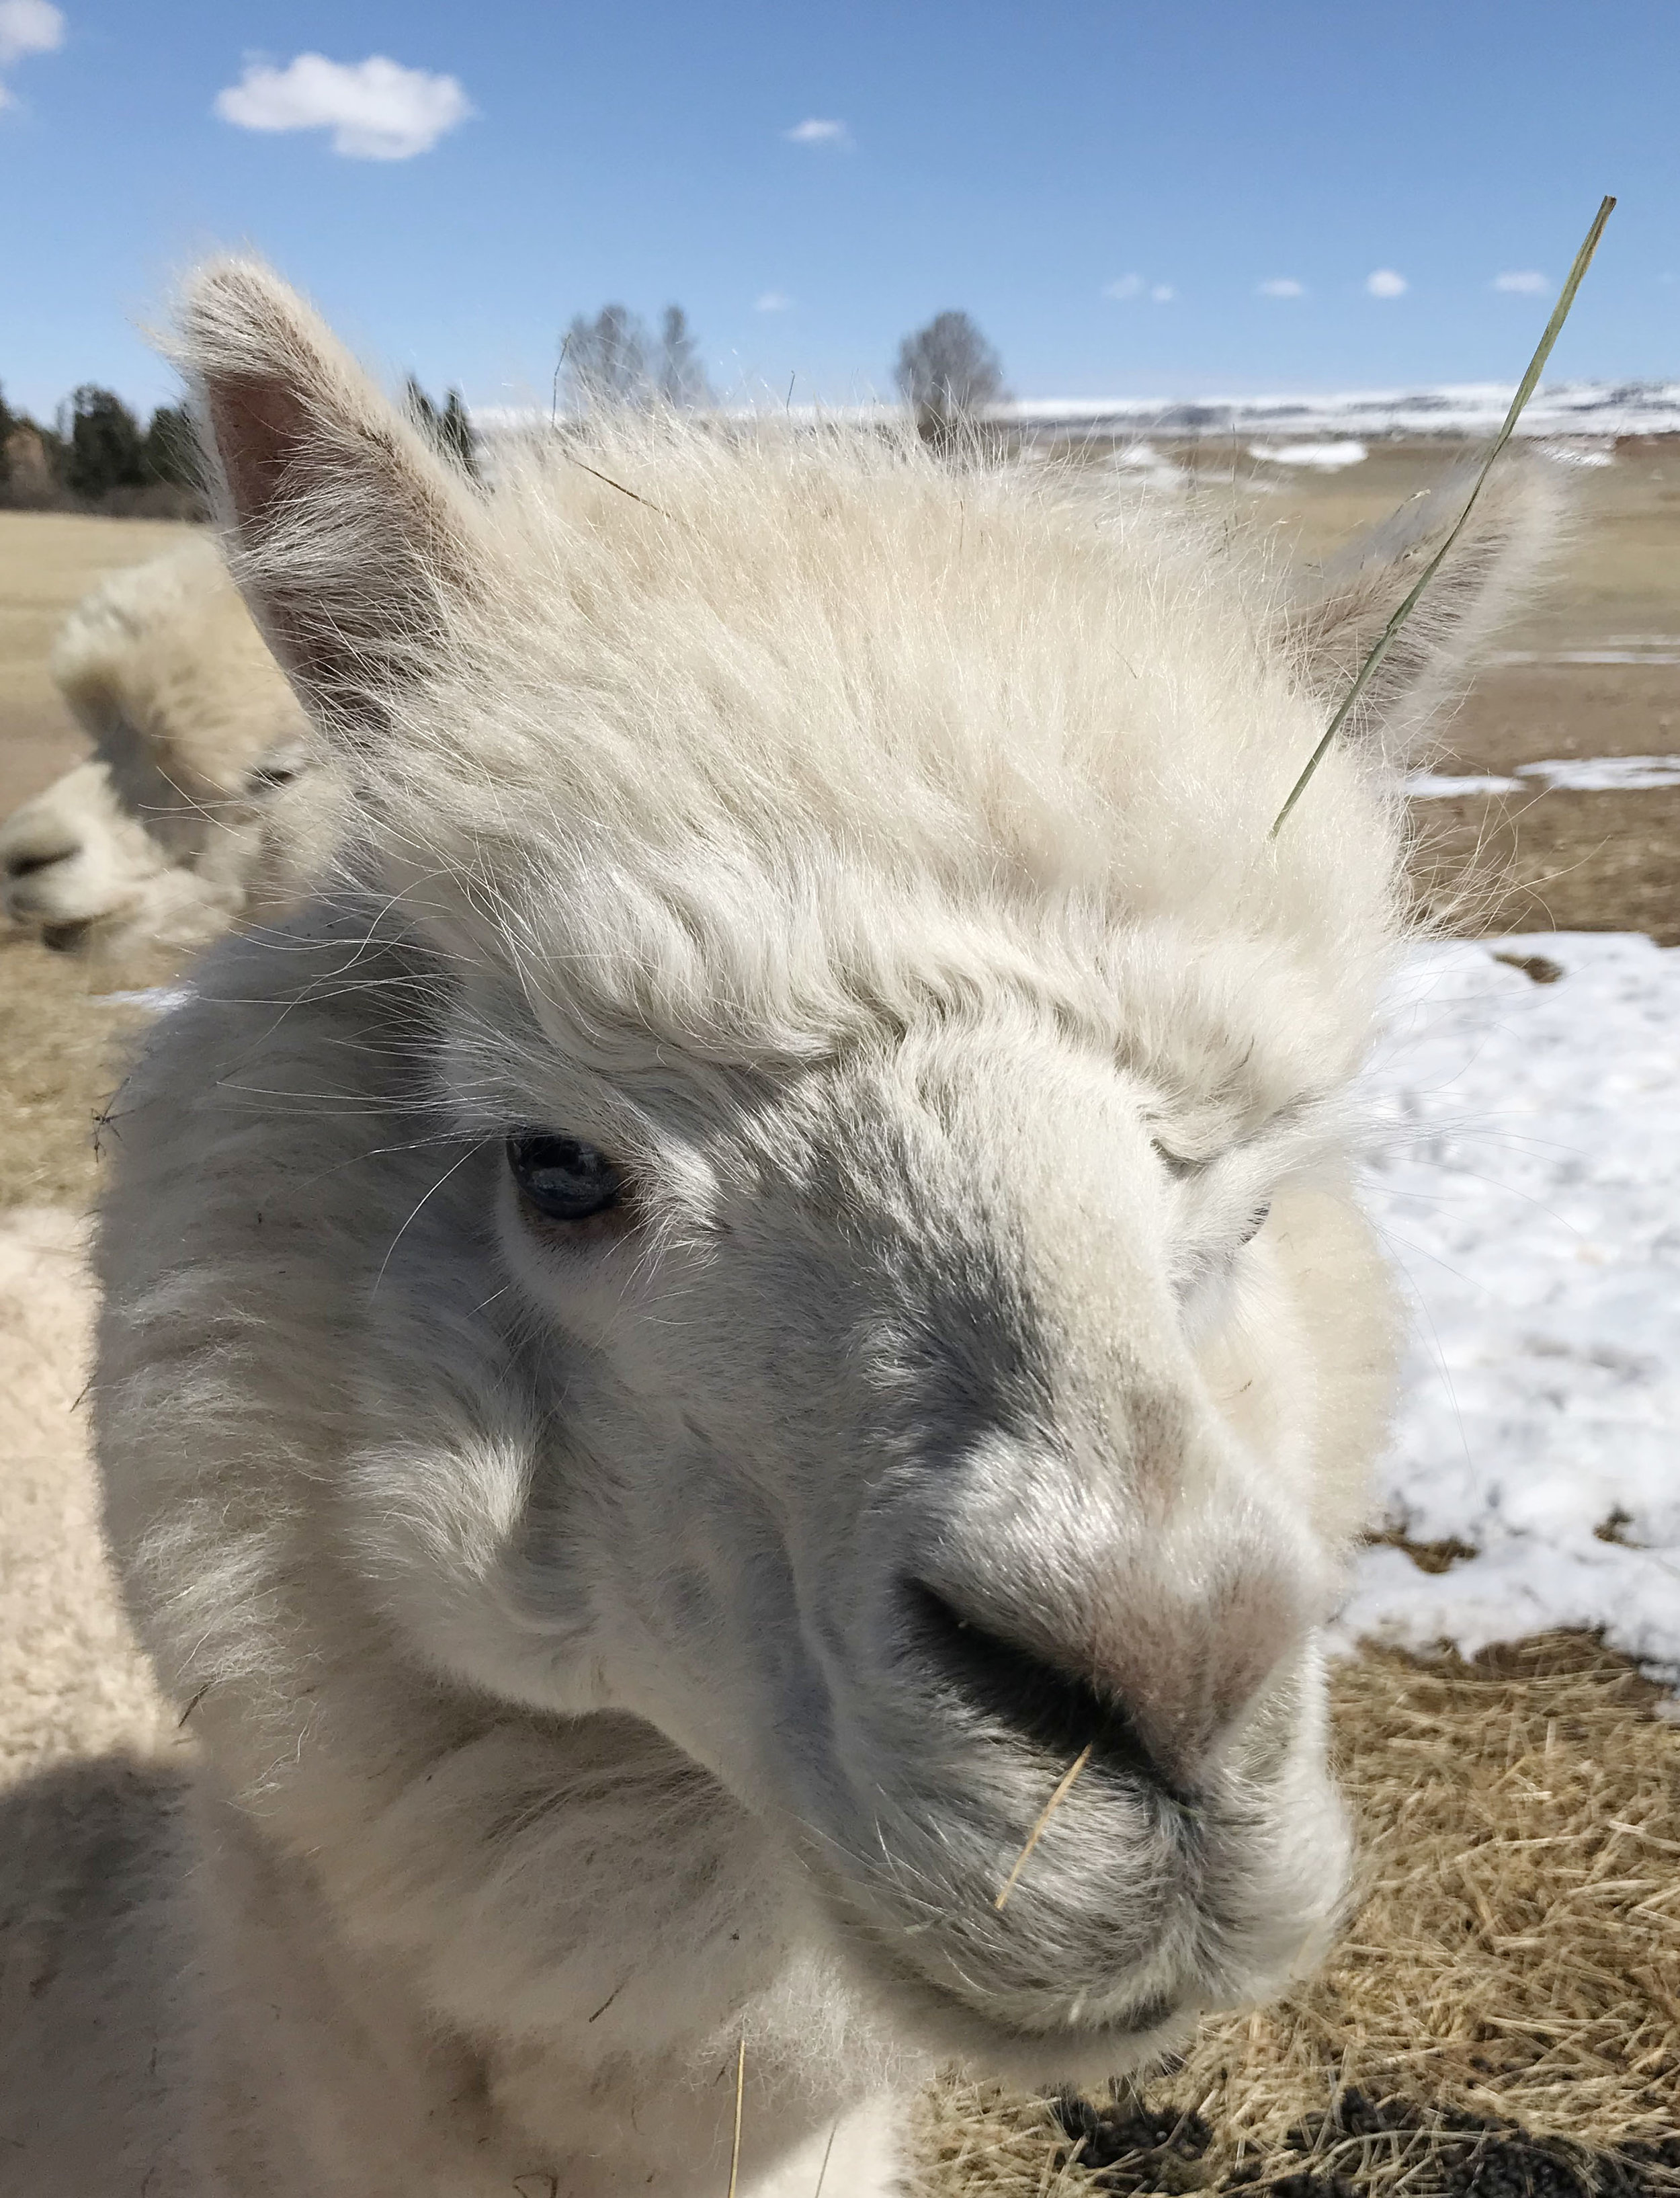 Blue the alpaca